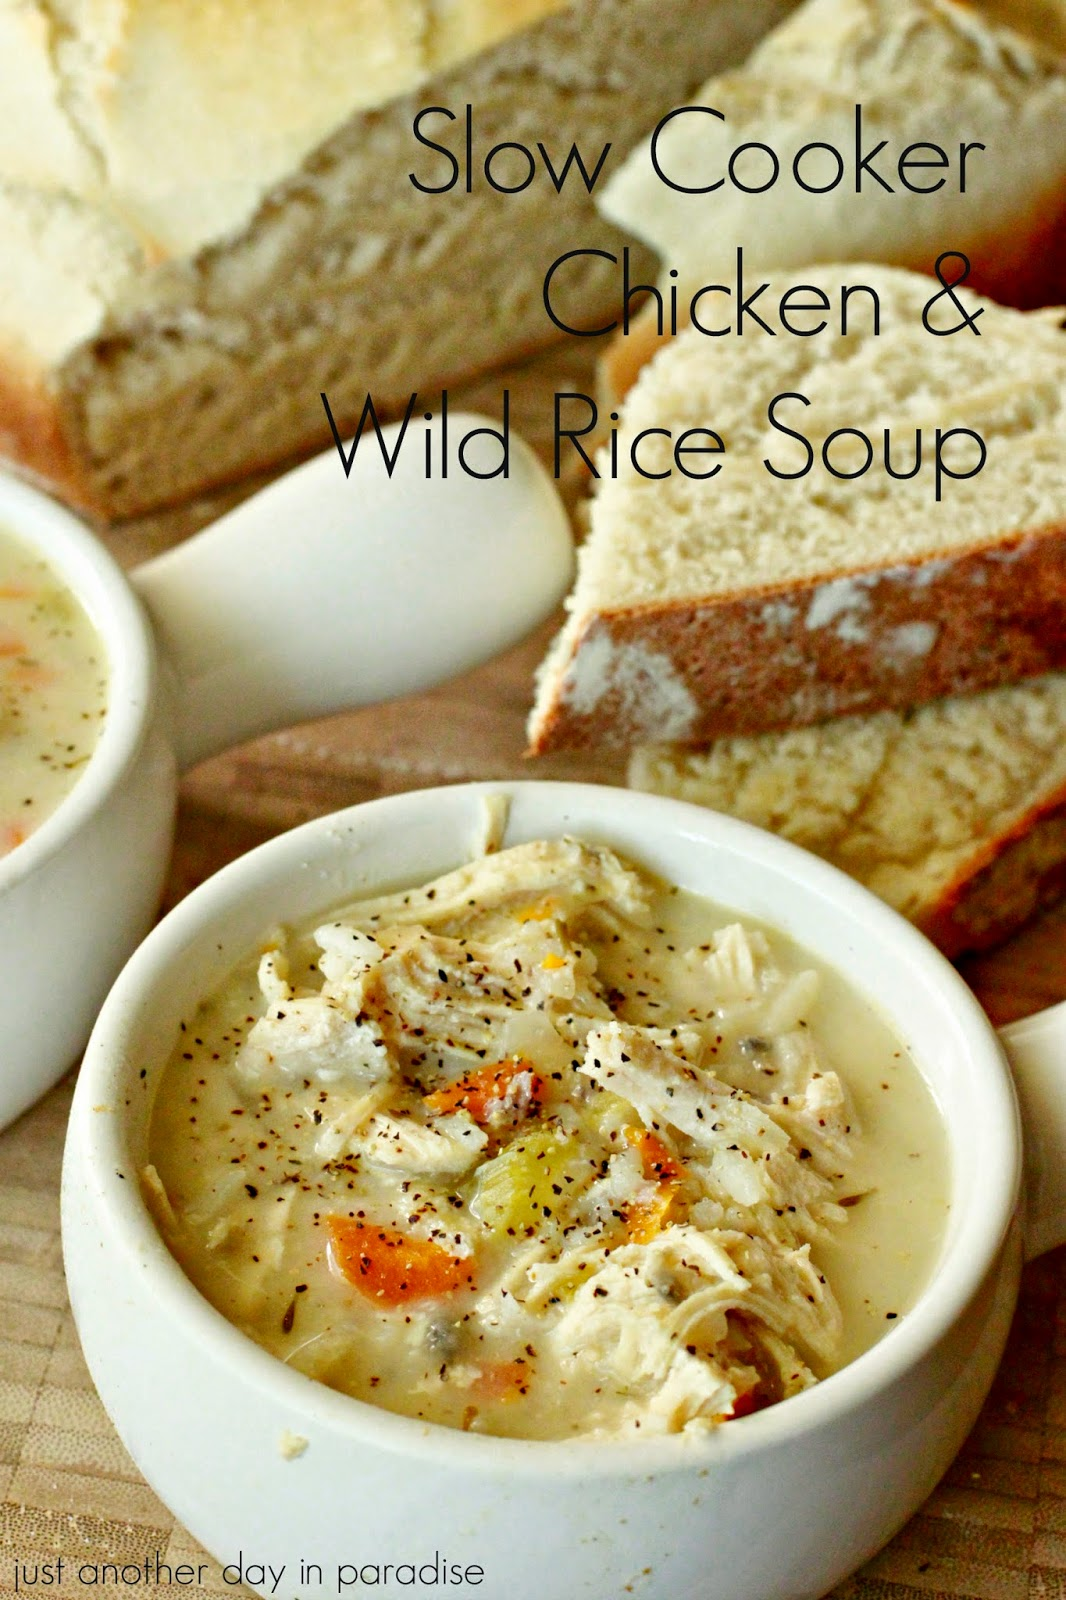 Larissa Another Day: Slow Cooker Chicken and Wild Rice Soup